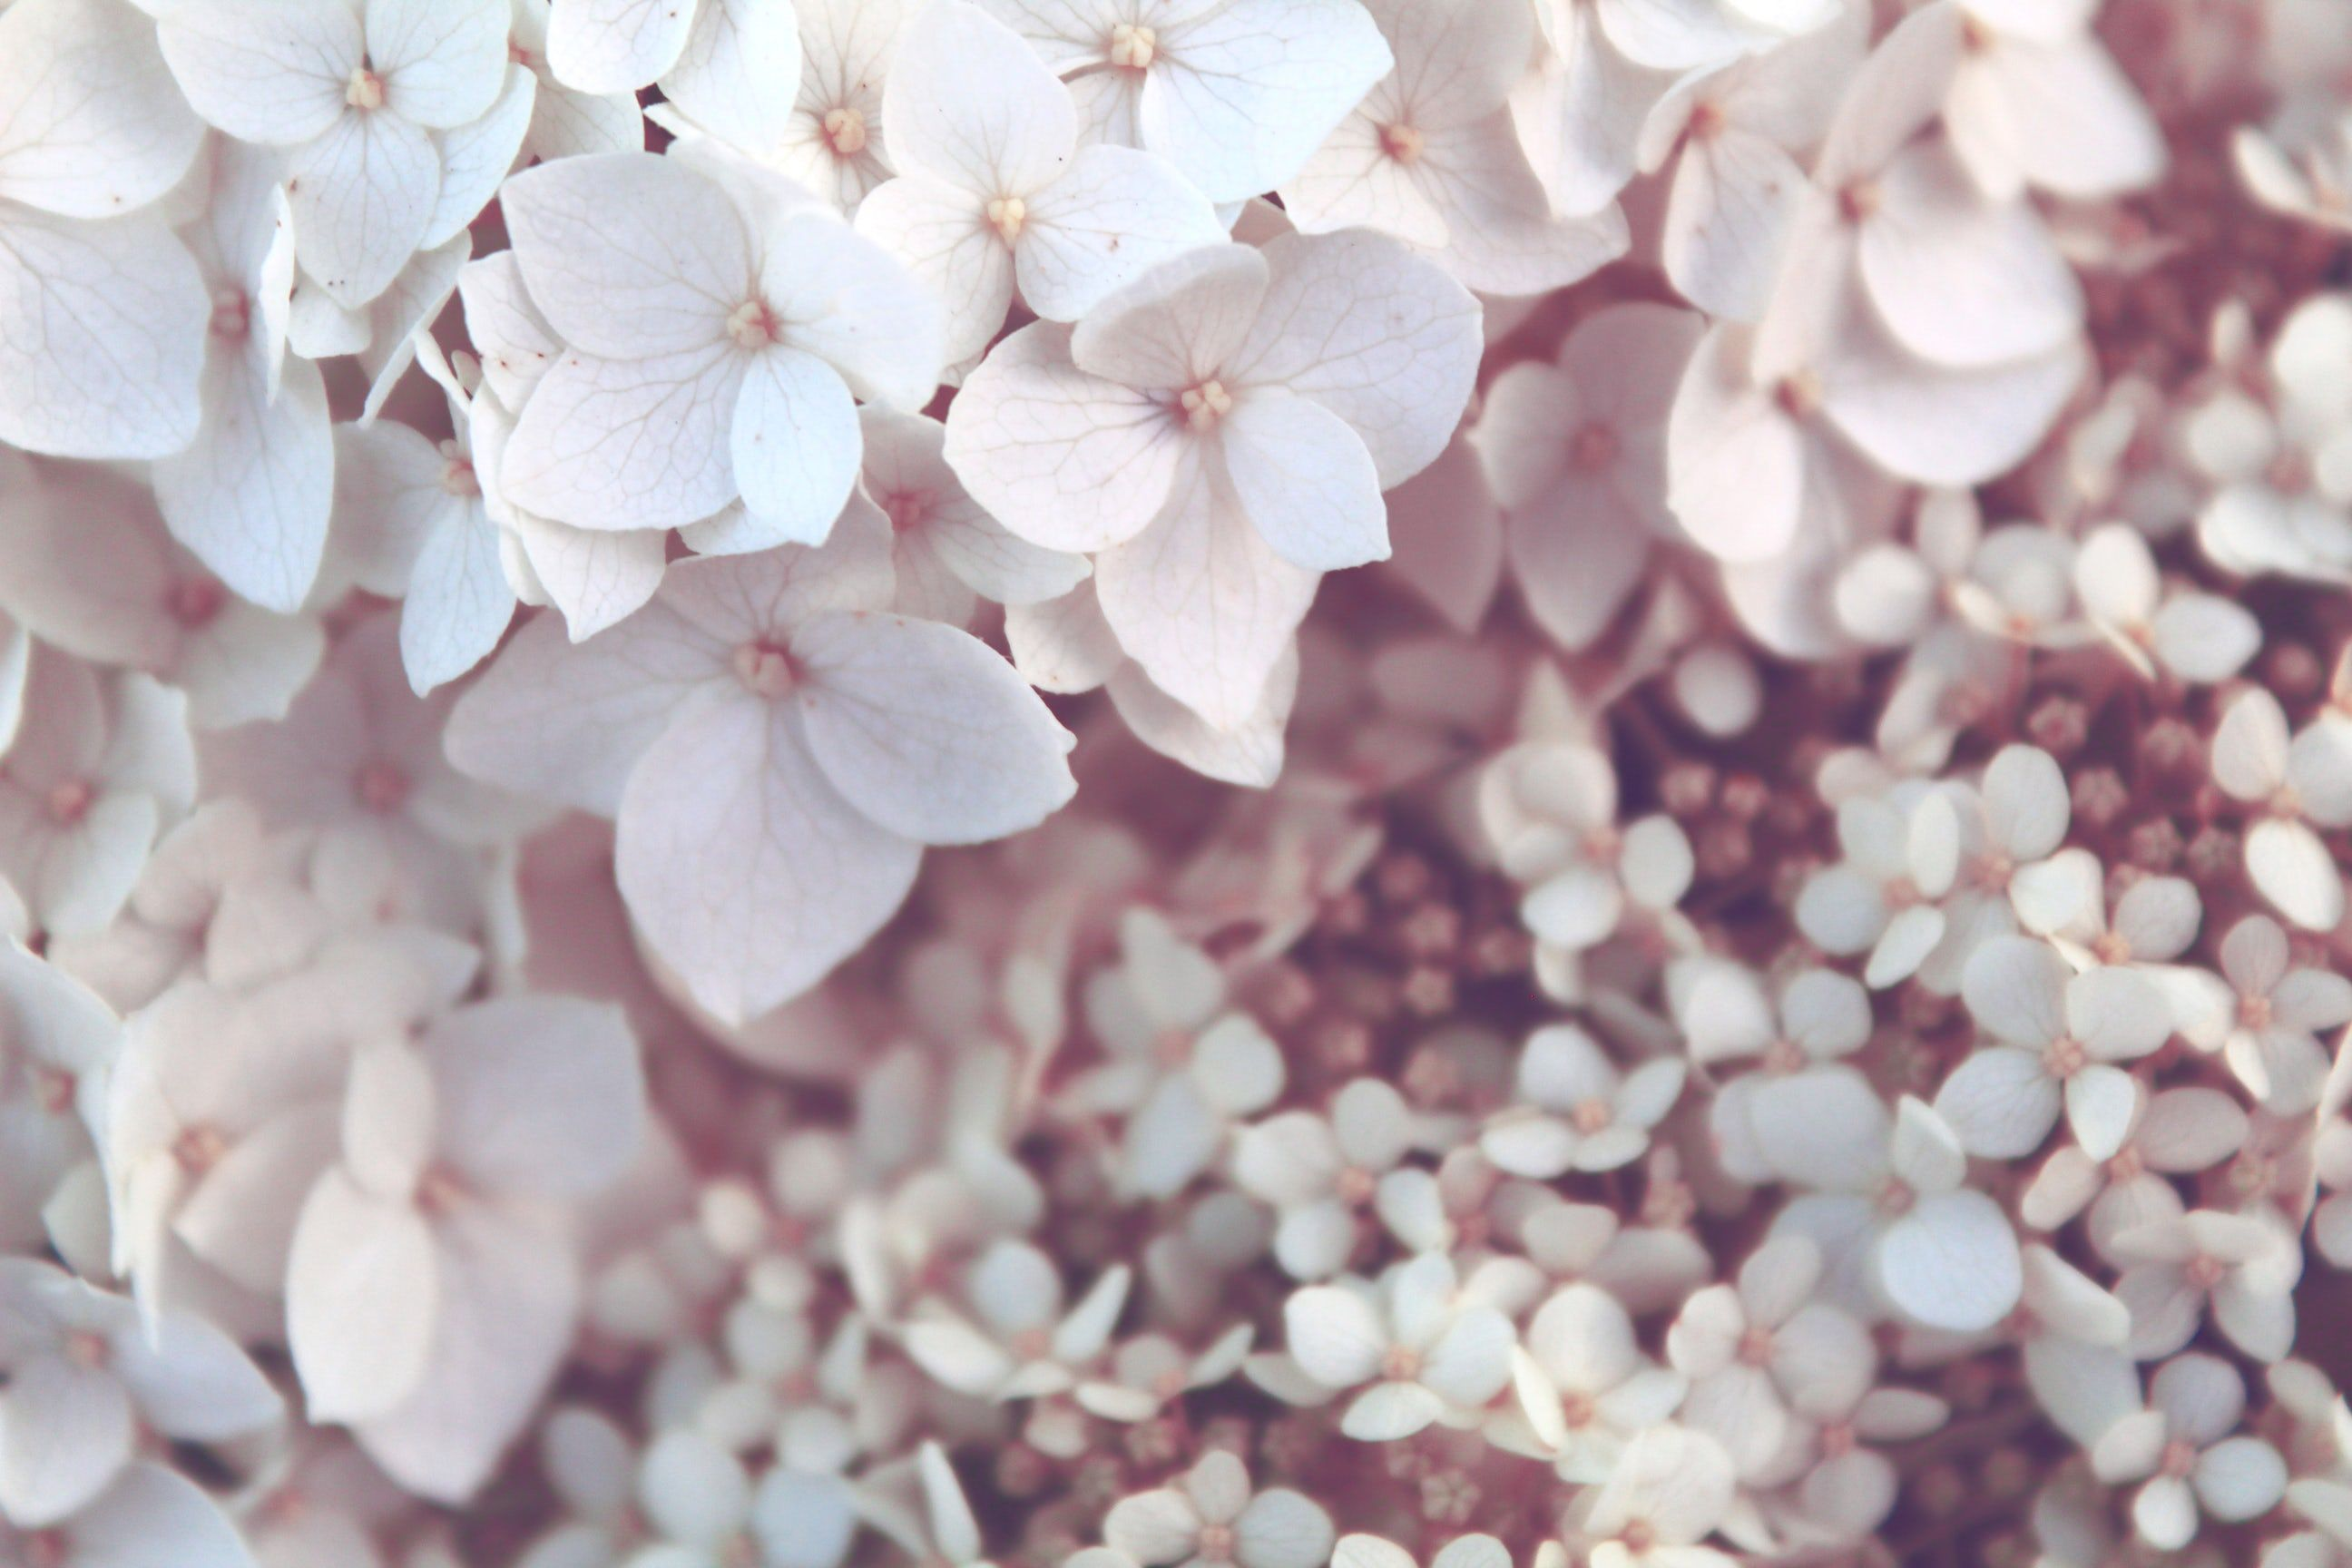 A Close Up Of A Dense Cluster Of White Hydrangea Flowers White Art